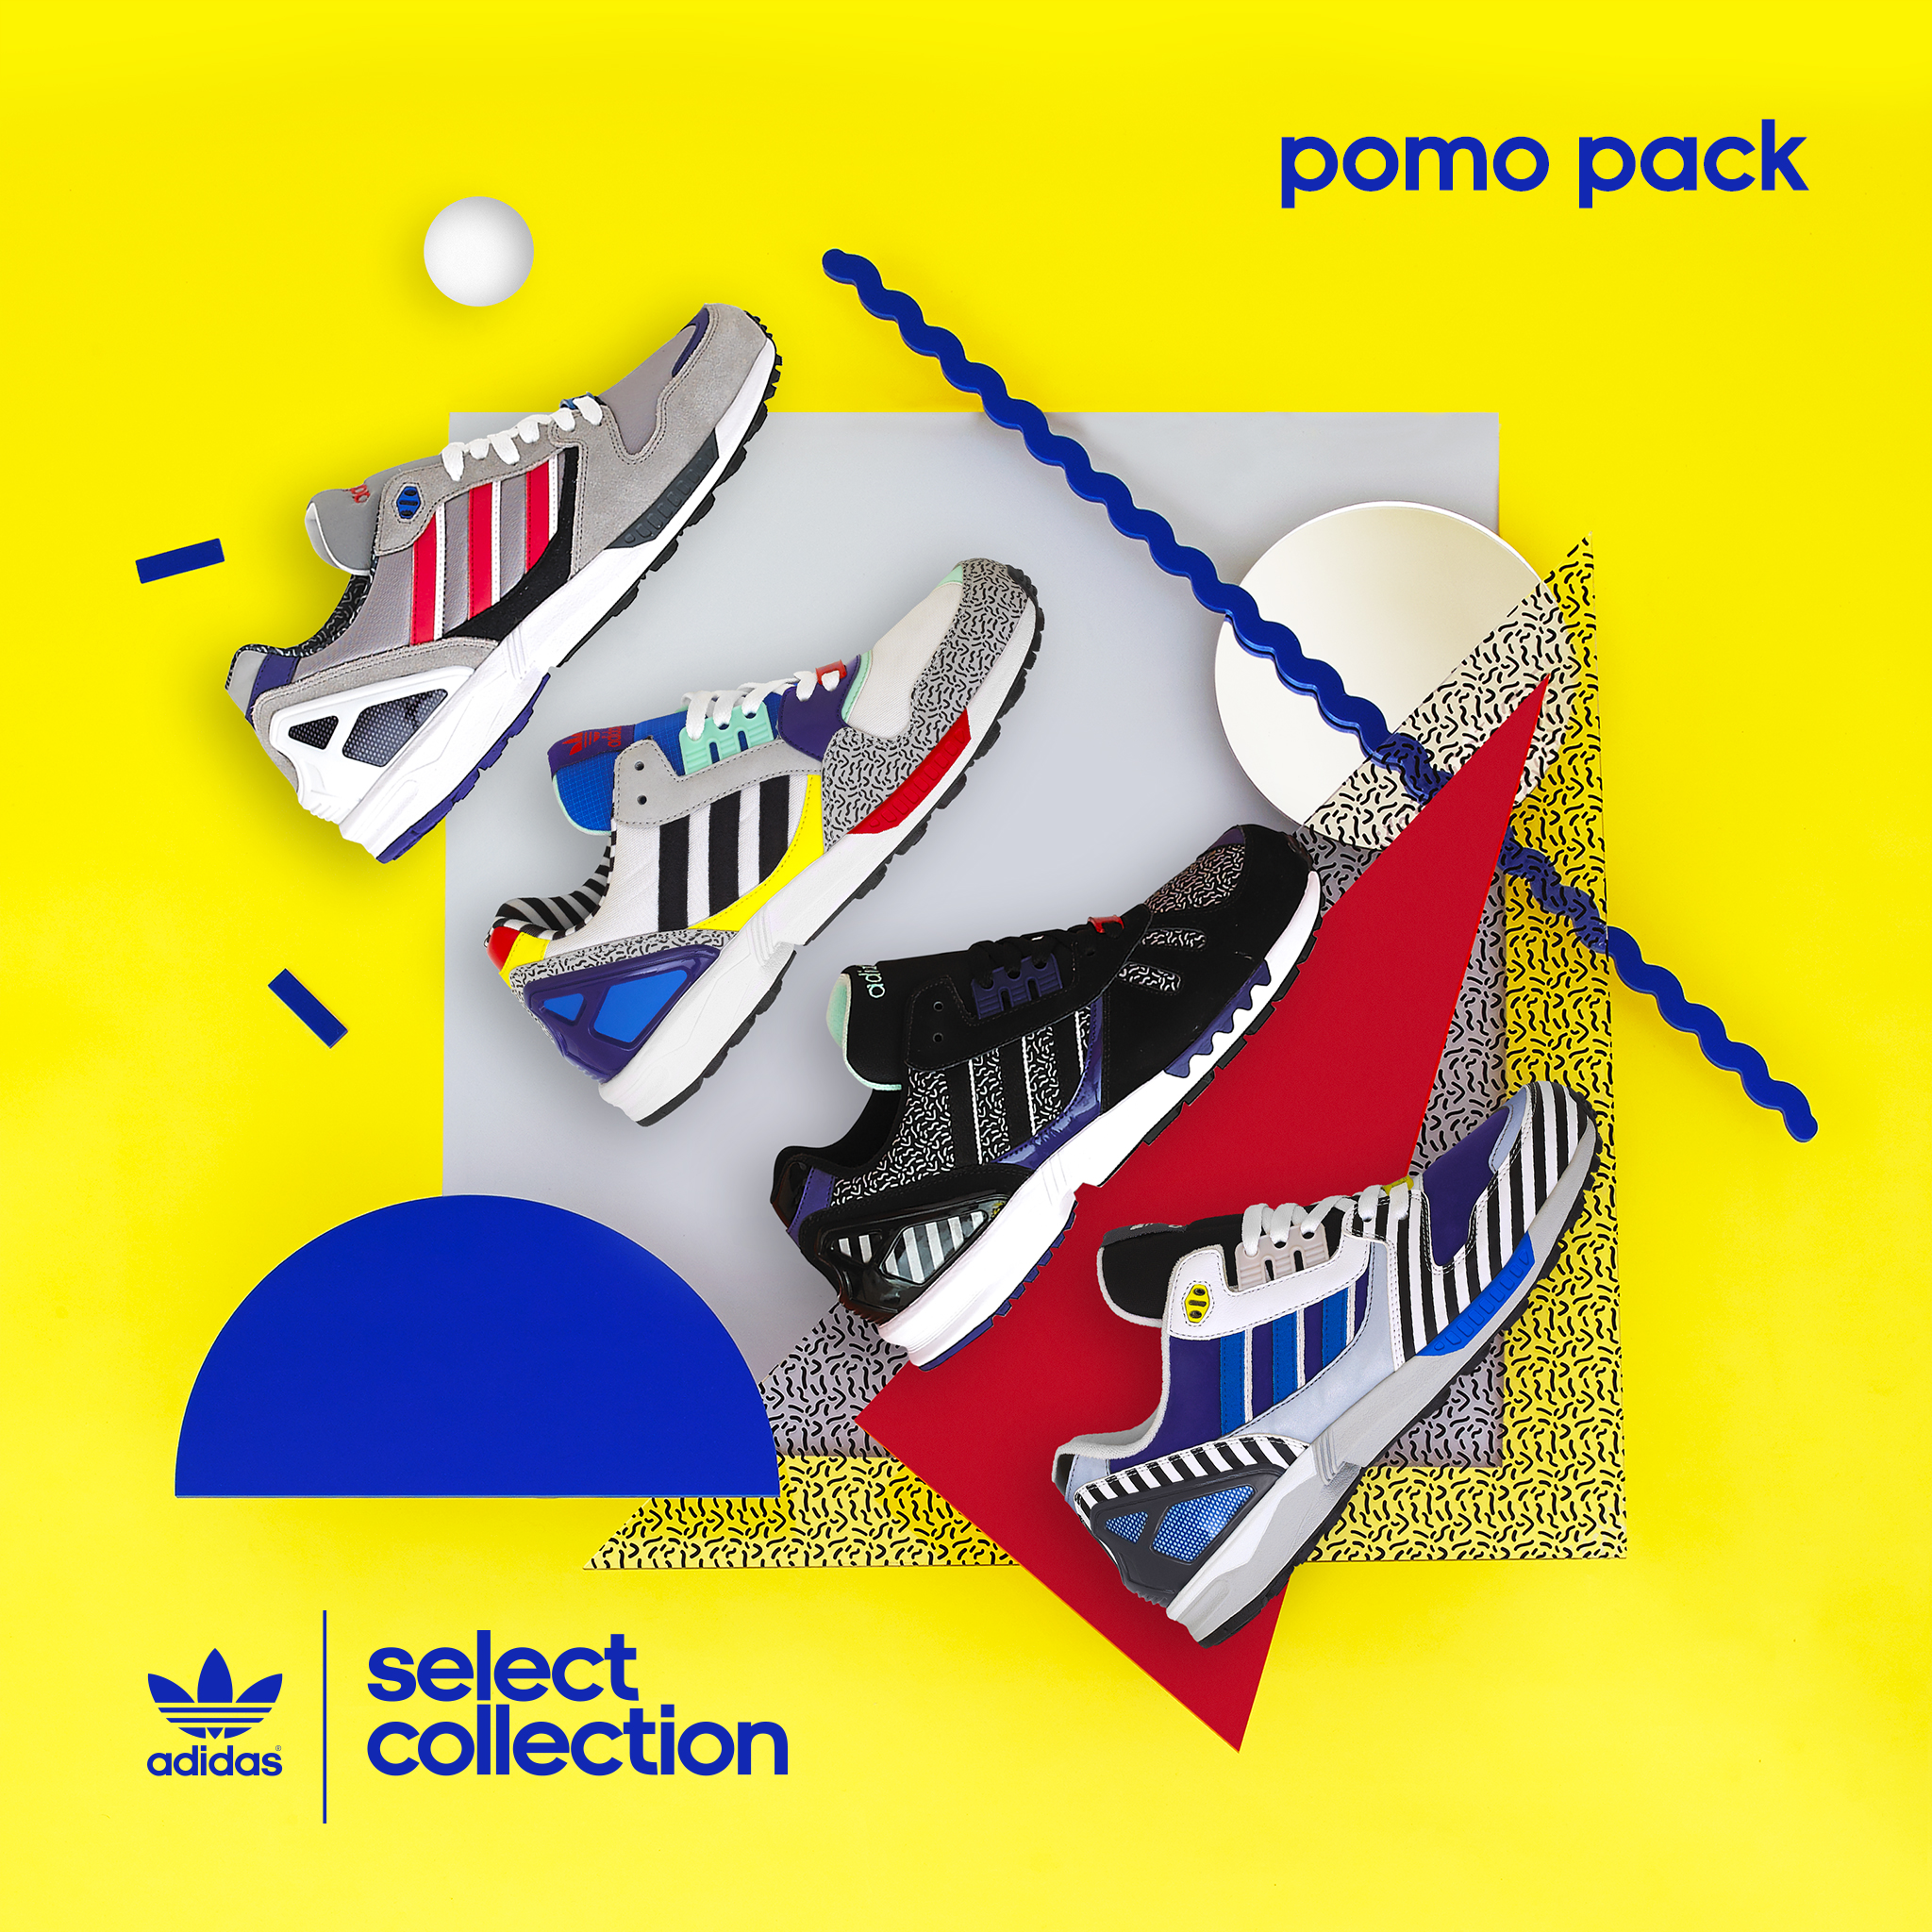 adidas Originals Select Collection pomo pack – size? UK exclusive